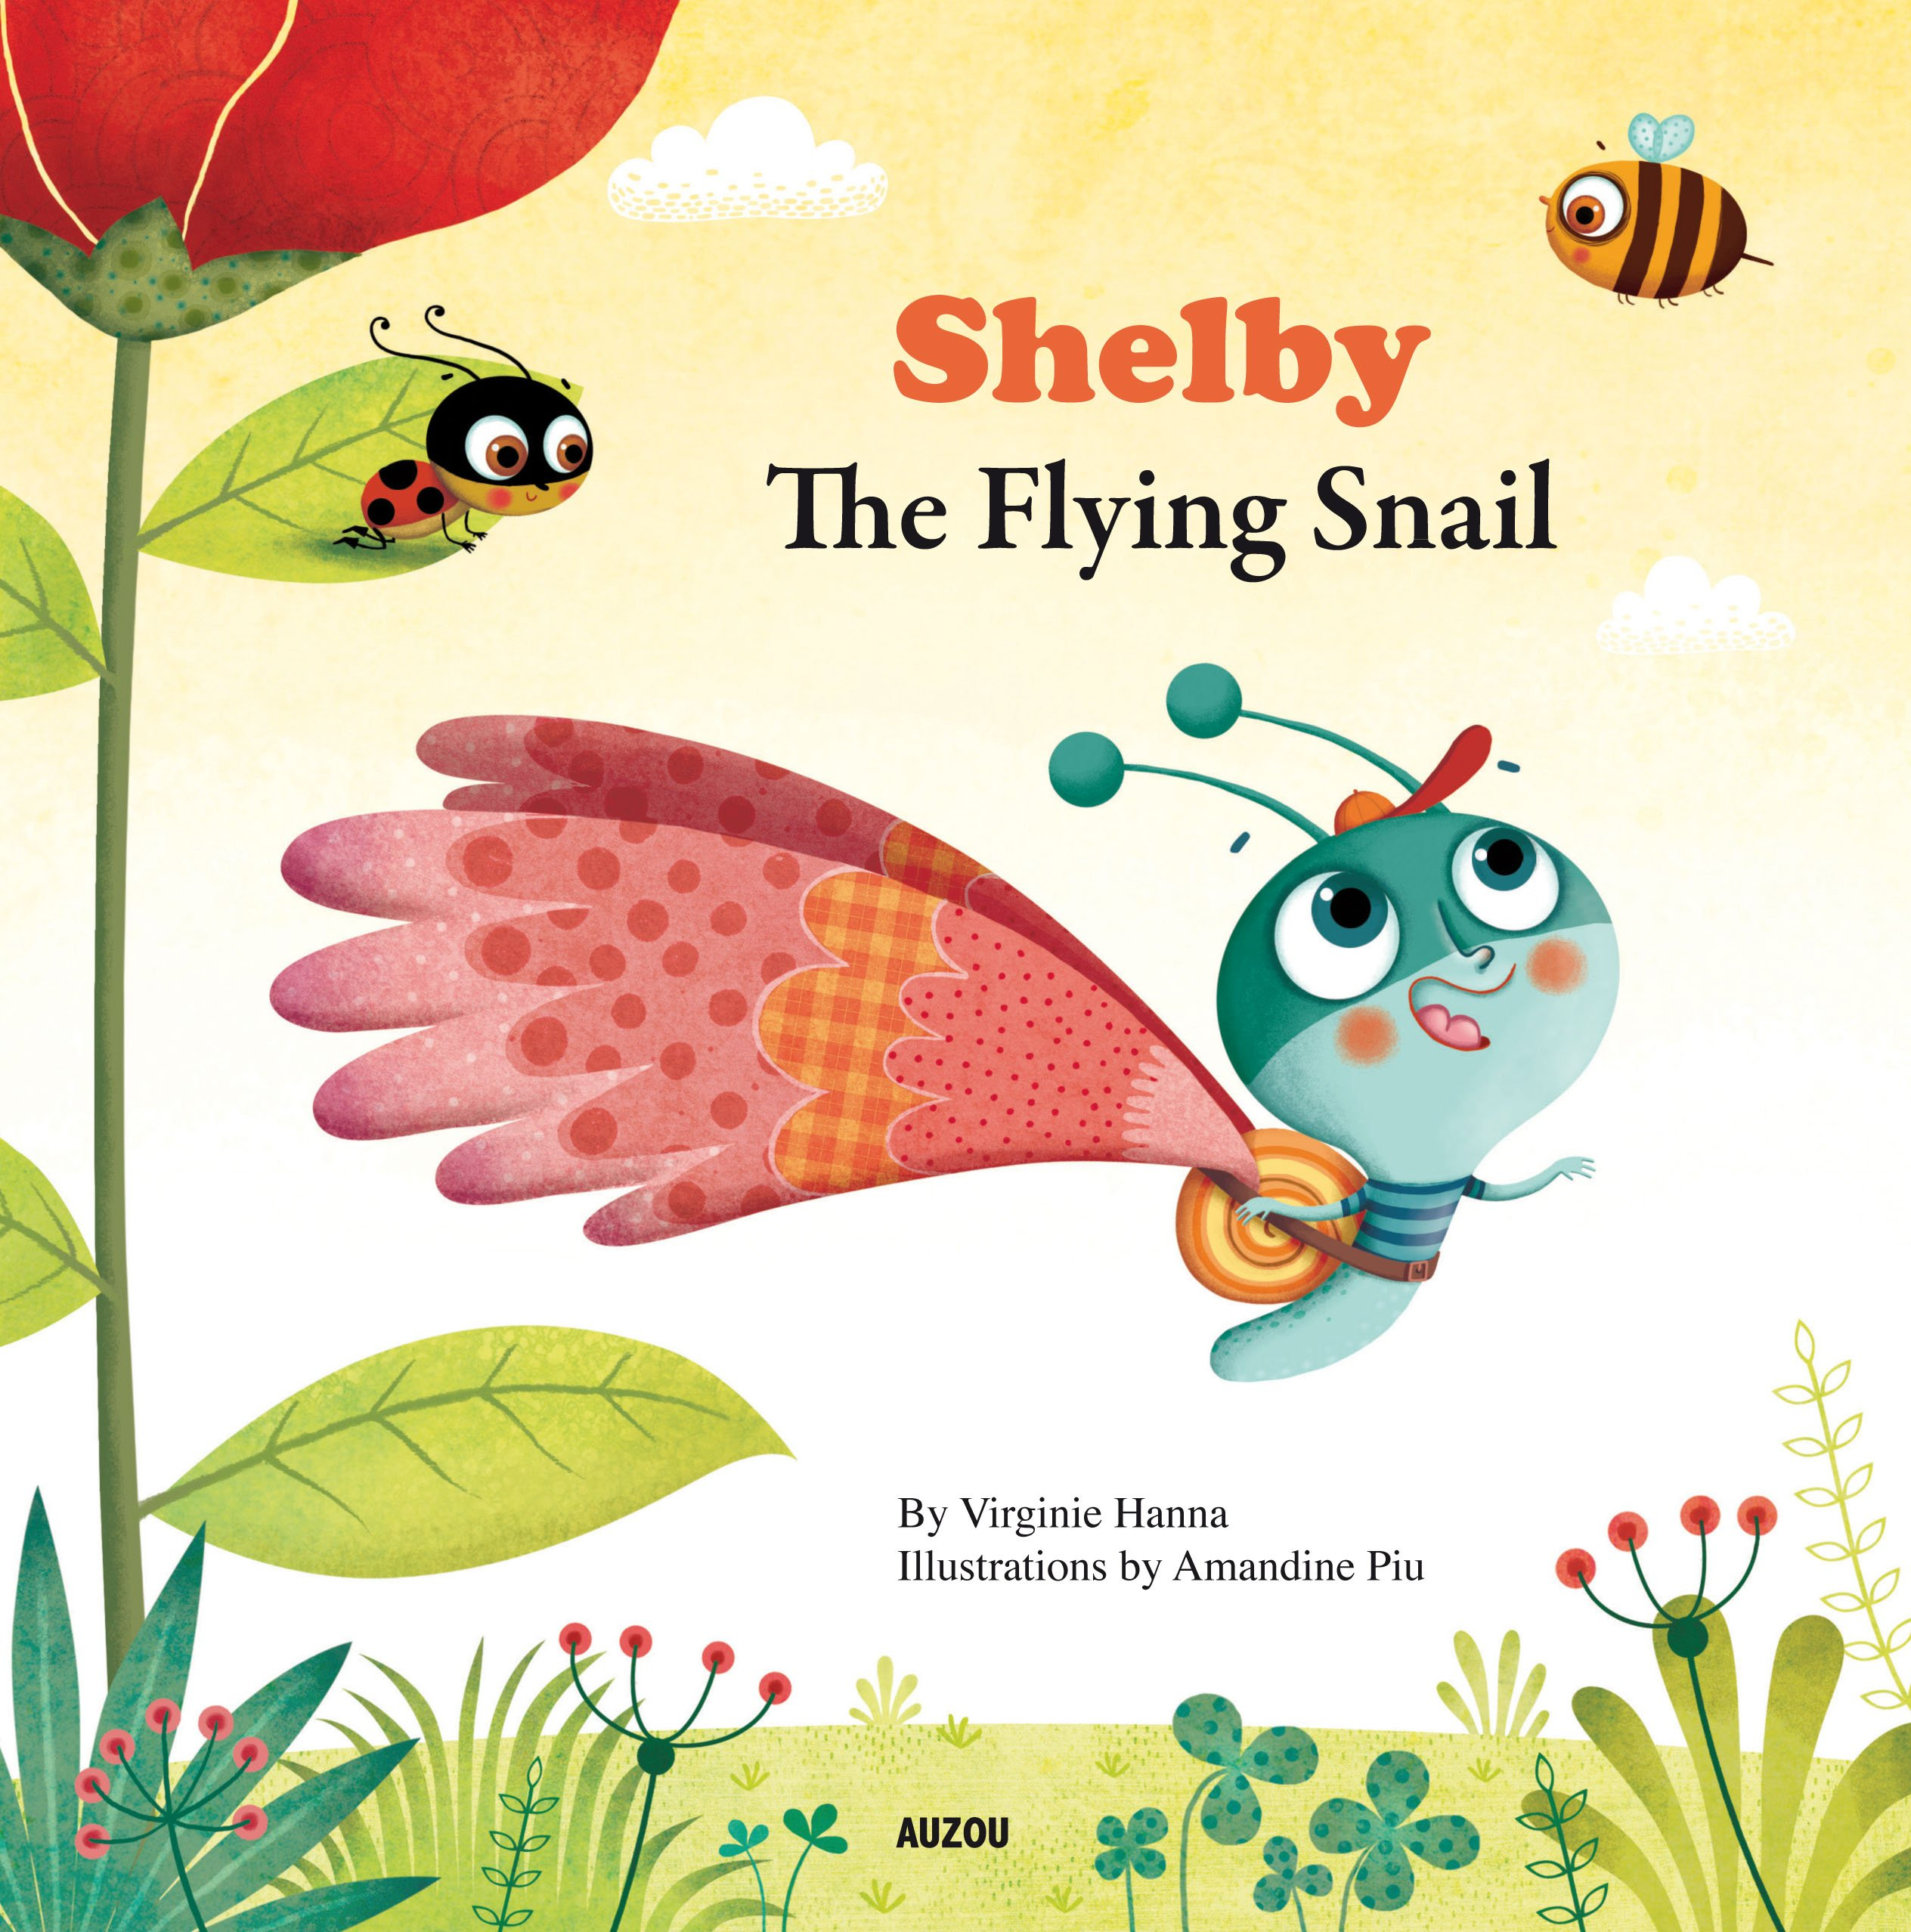 Shelby the Flying Snail (Square Picture Books) pdf epub